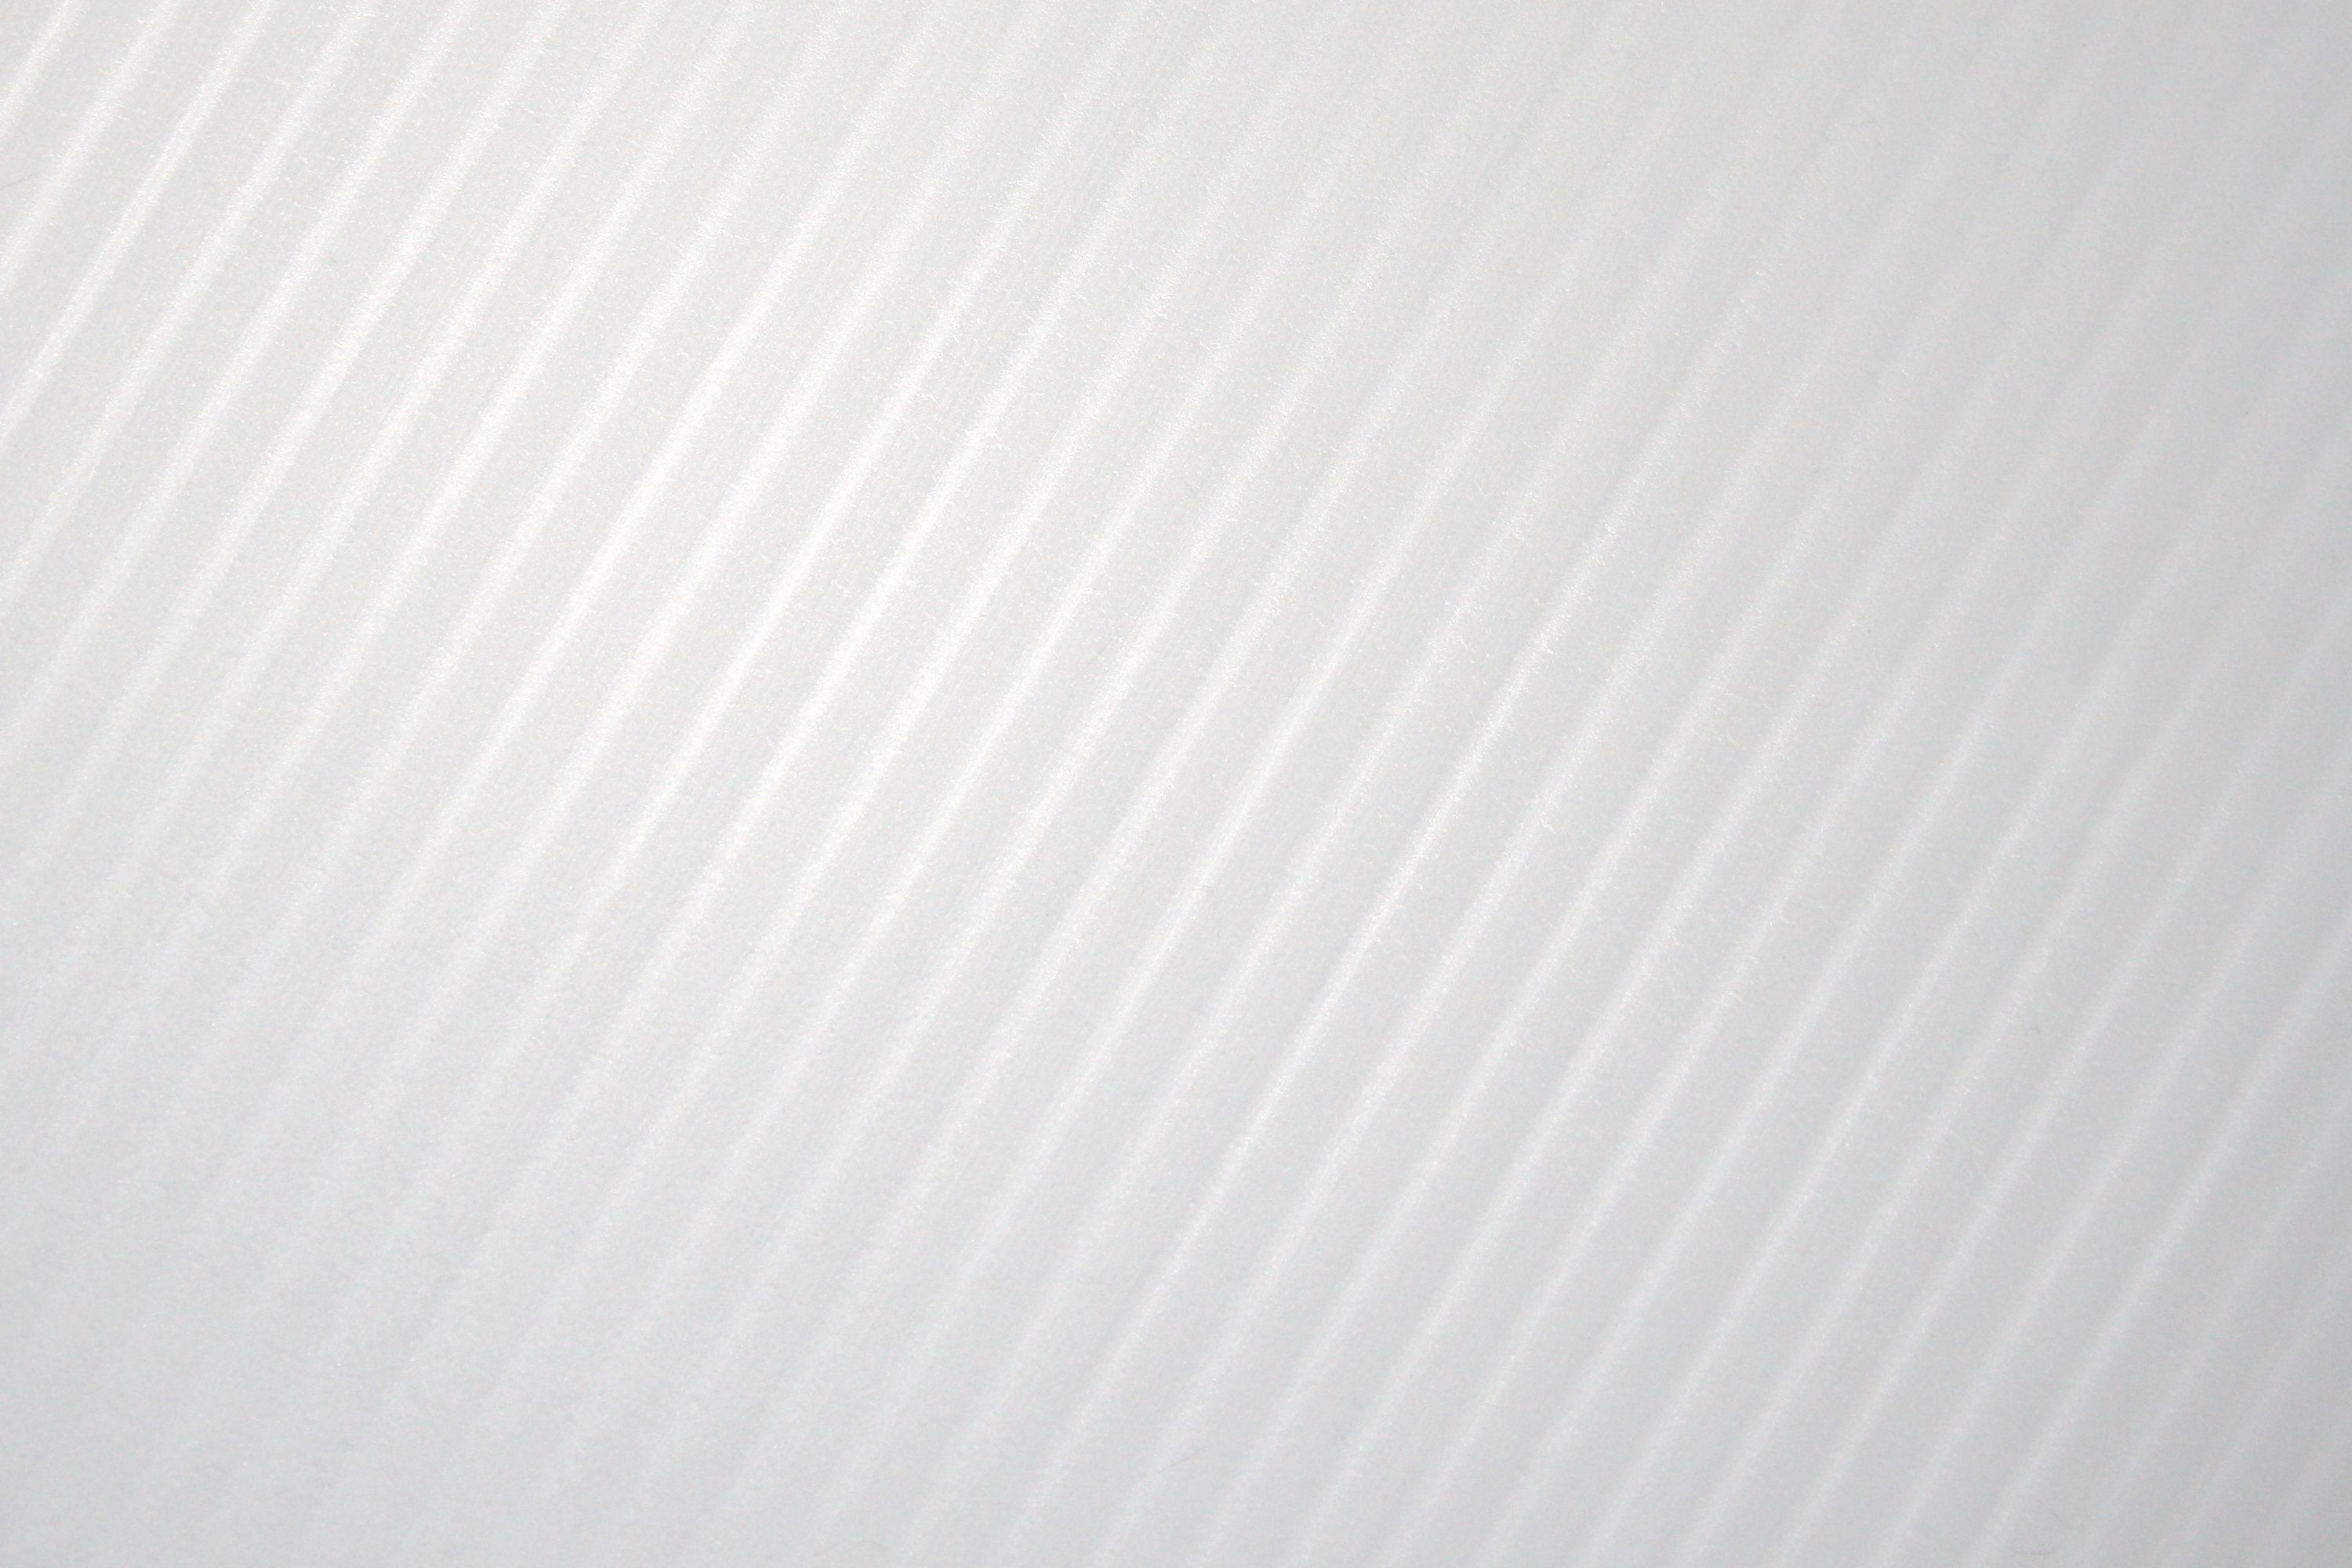 White Diagonal Striped Plastic Texture  Free High Resolution